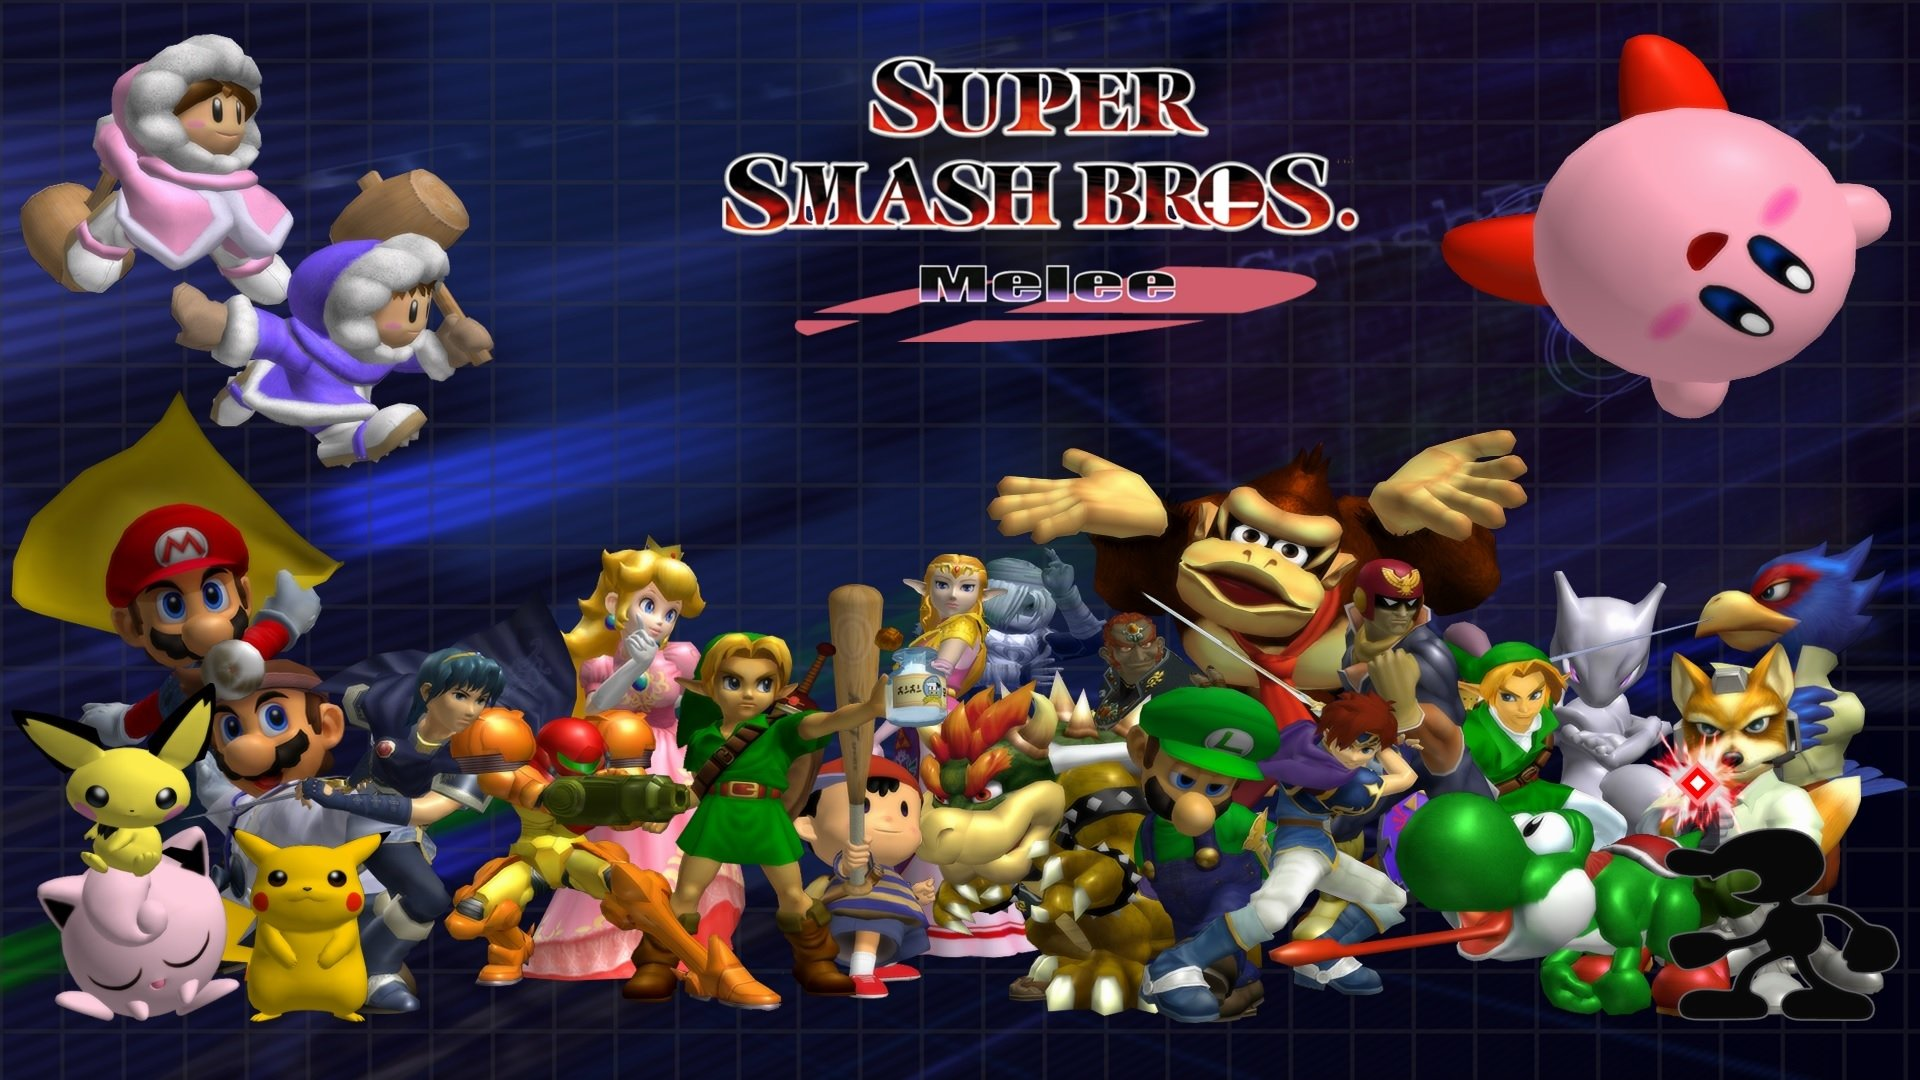 5 Super Smash Bros Melee Hd Wallpapers Background Images